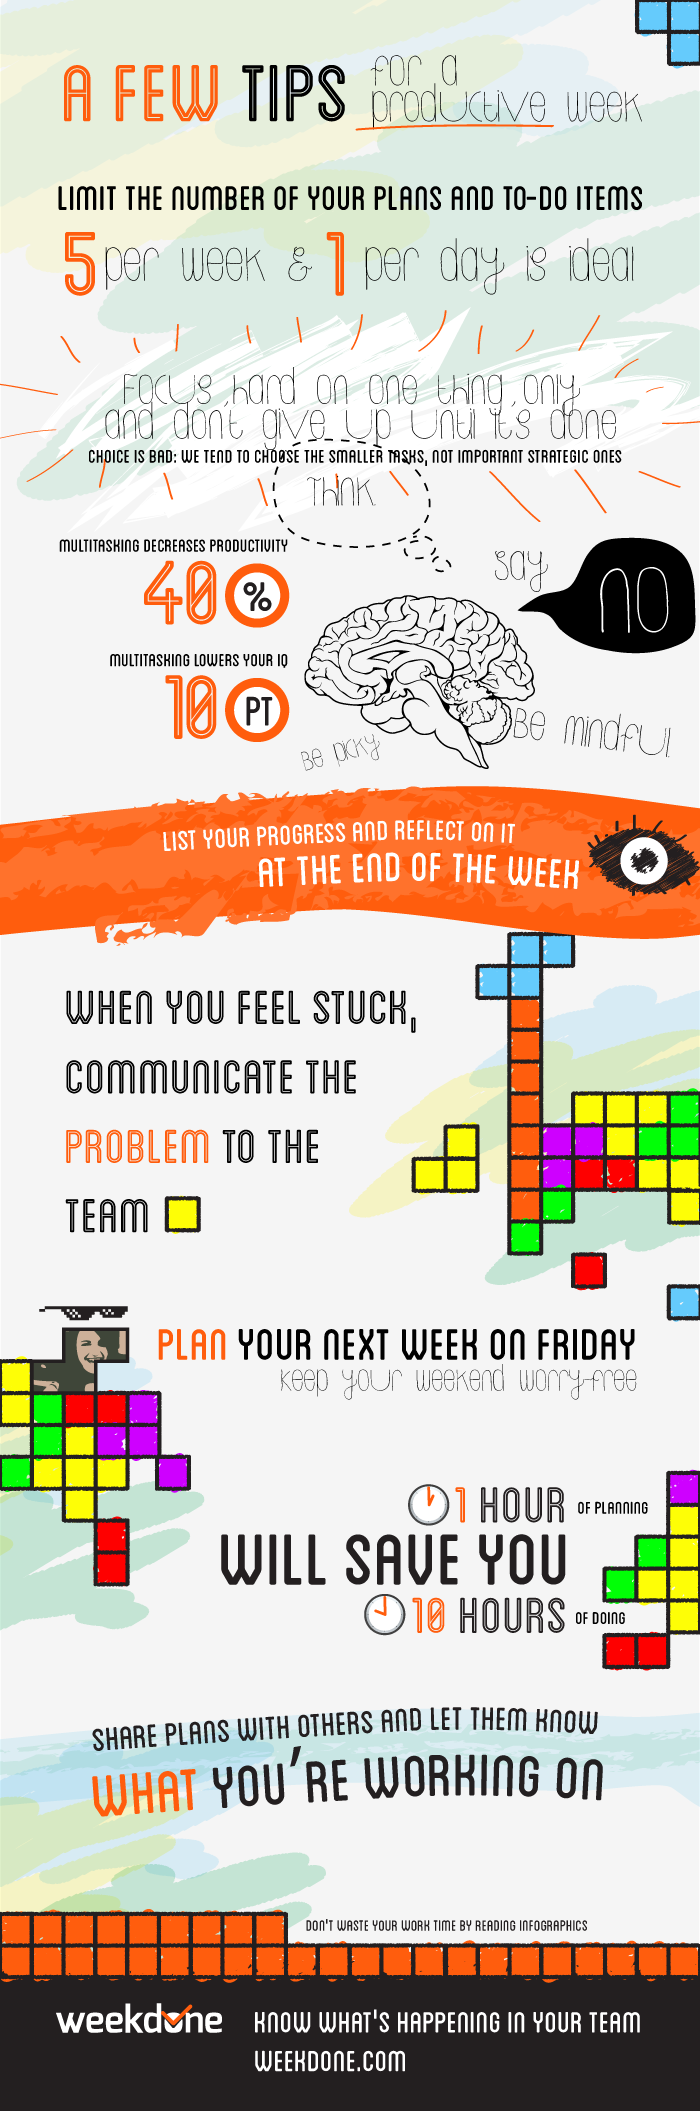 10 steps to productive week with Weekdone